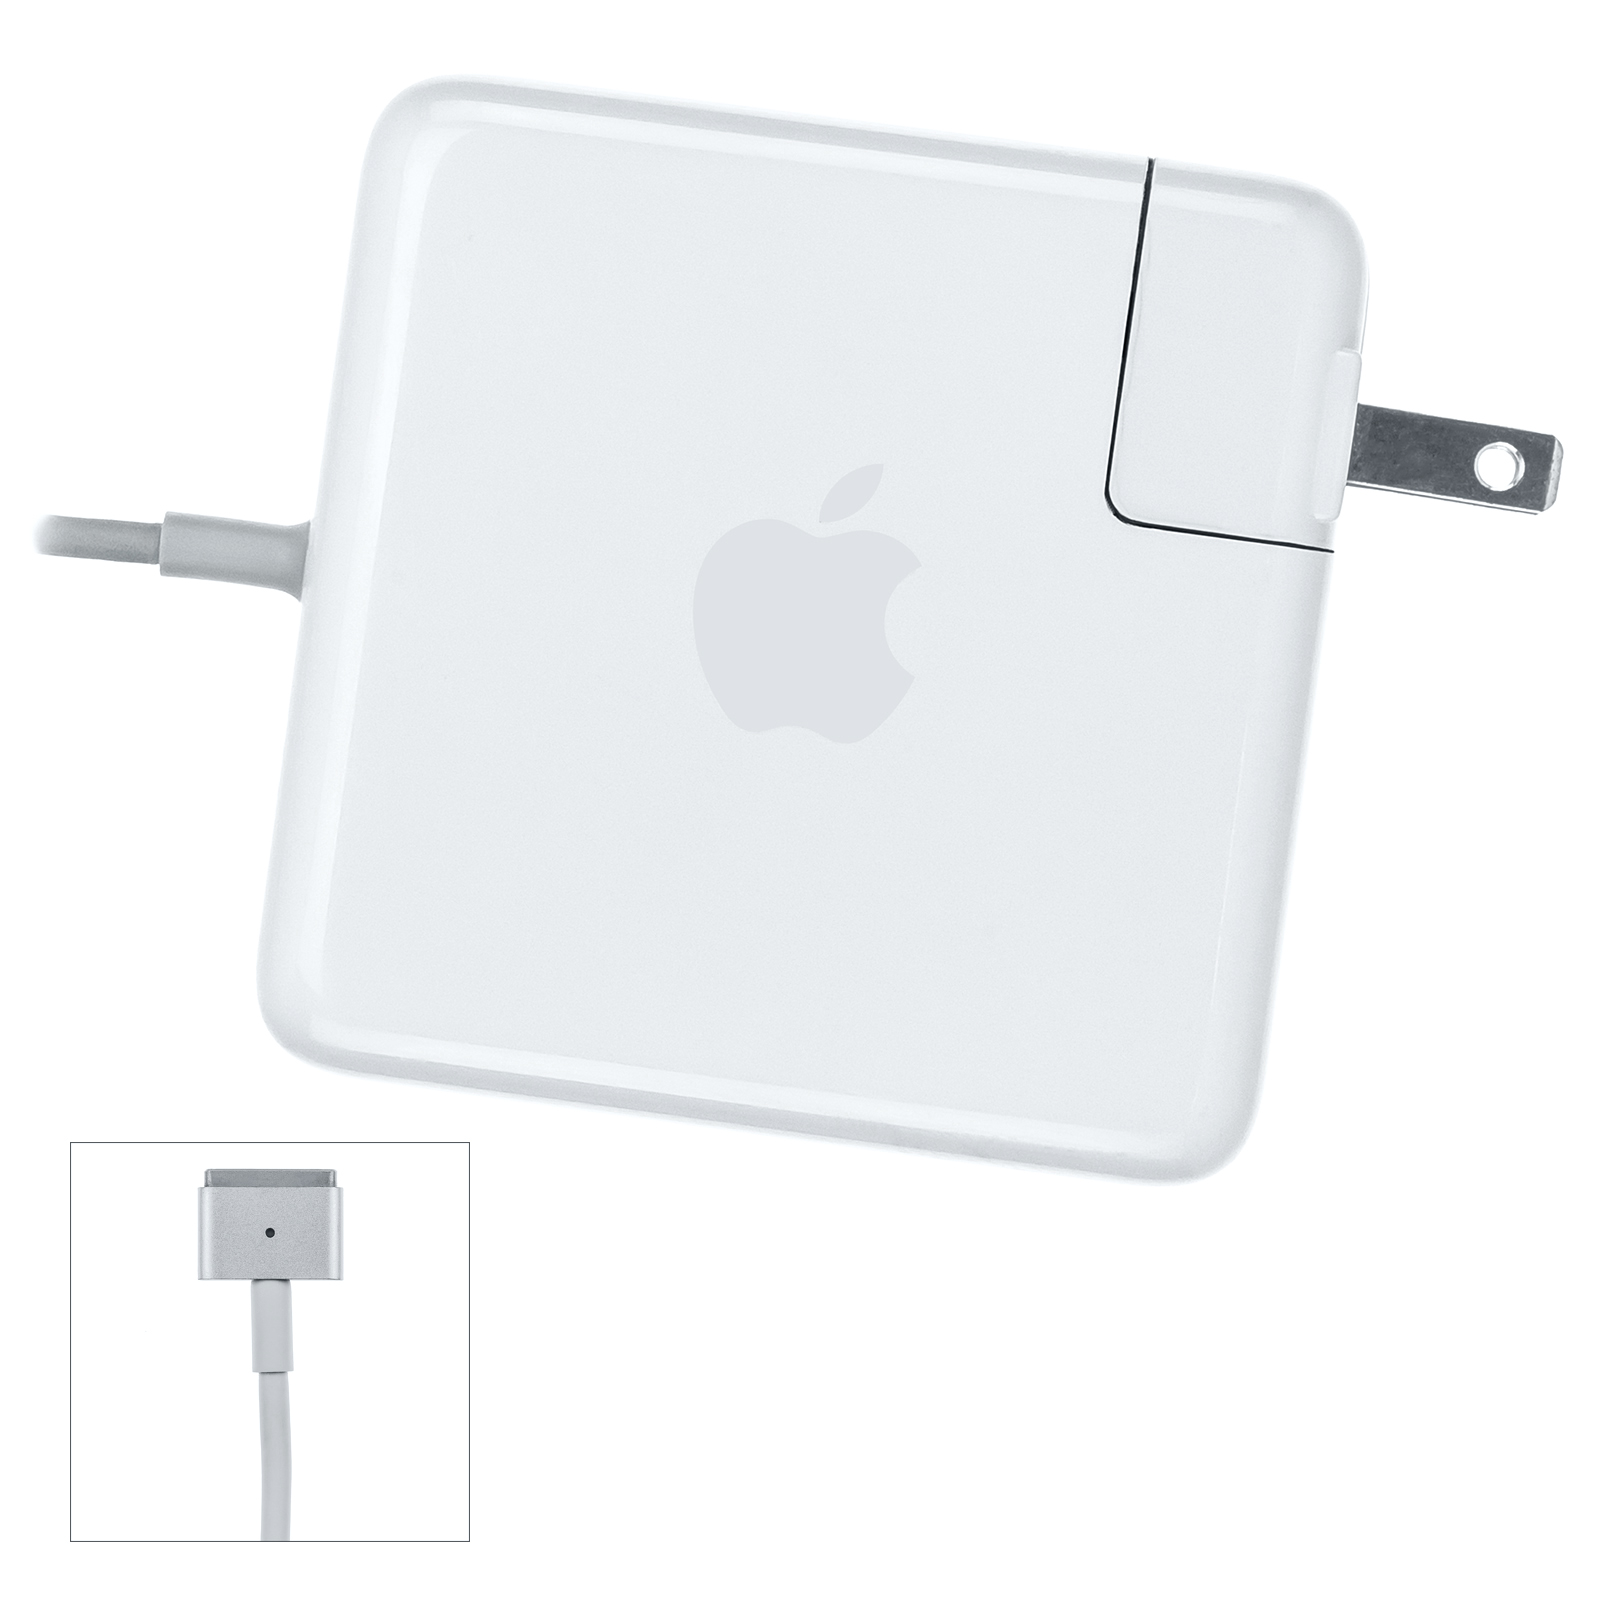 MagSafe 2 Power Adapter (85W)